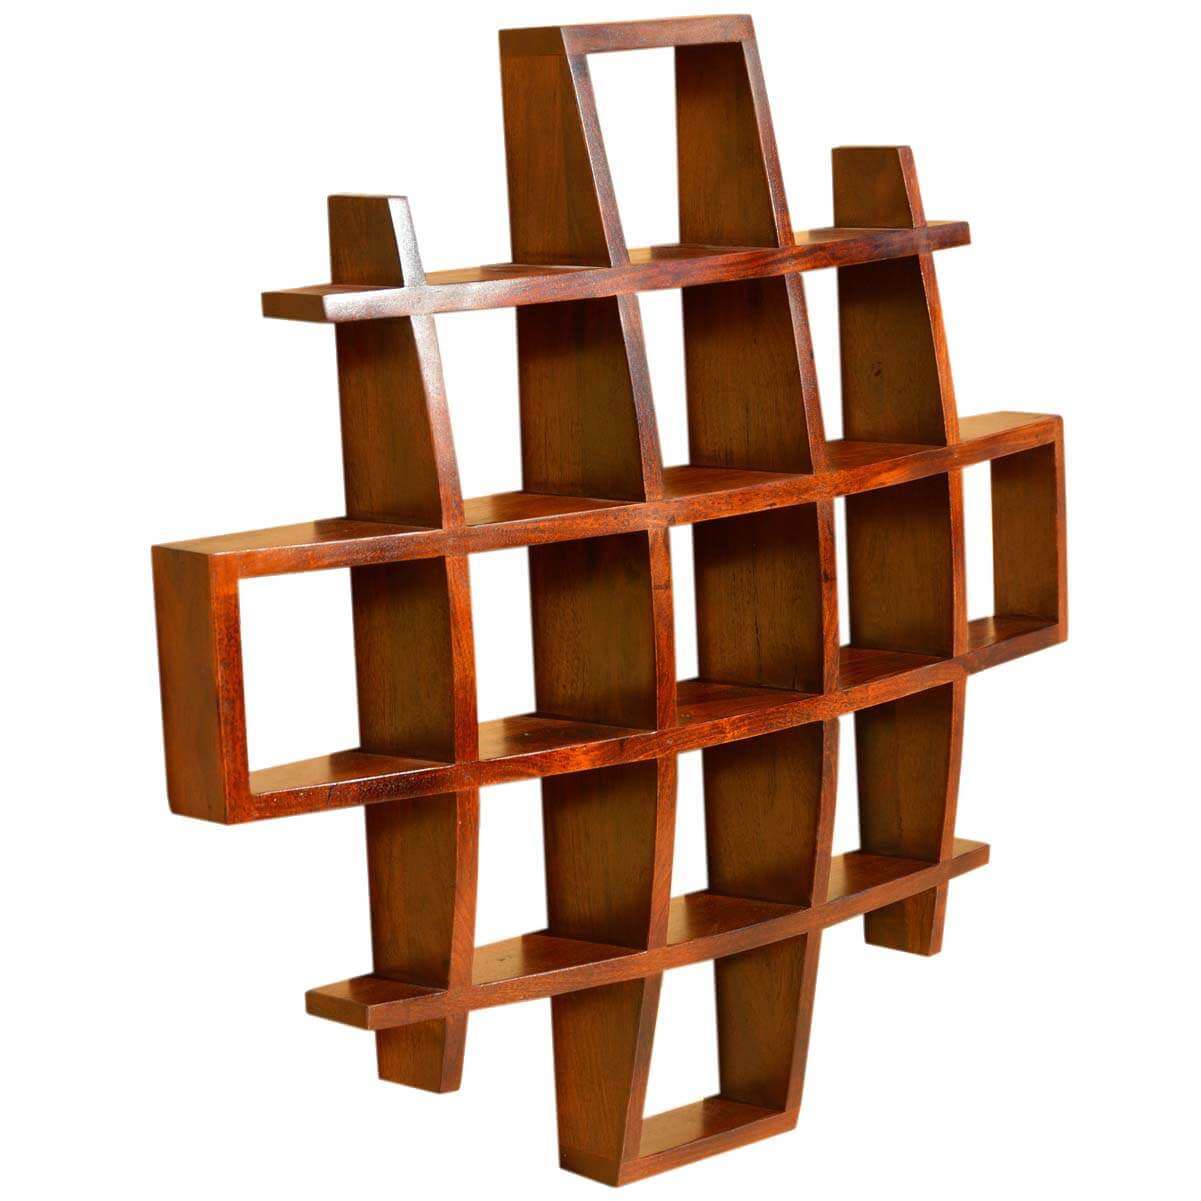 Home Decor Wall Hanging Of Contemporary Wood Display Wall Hanging Shelves Home Decor